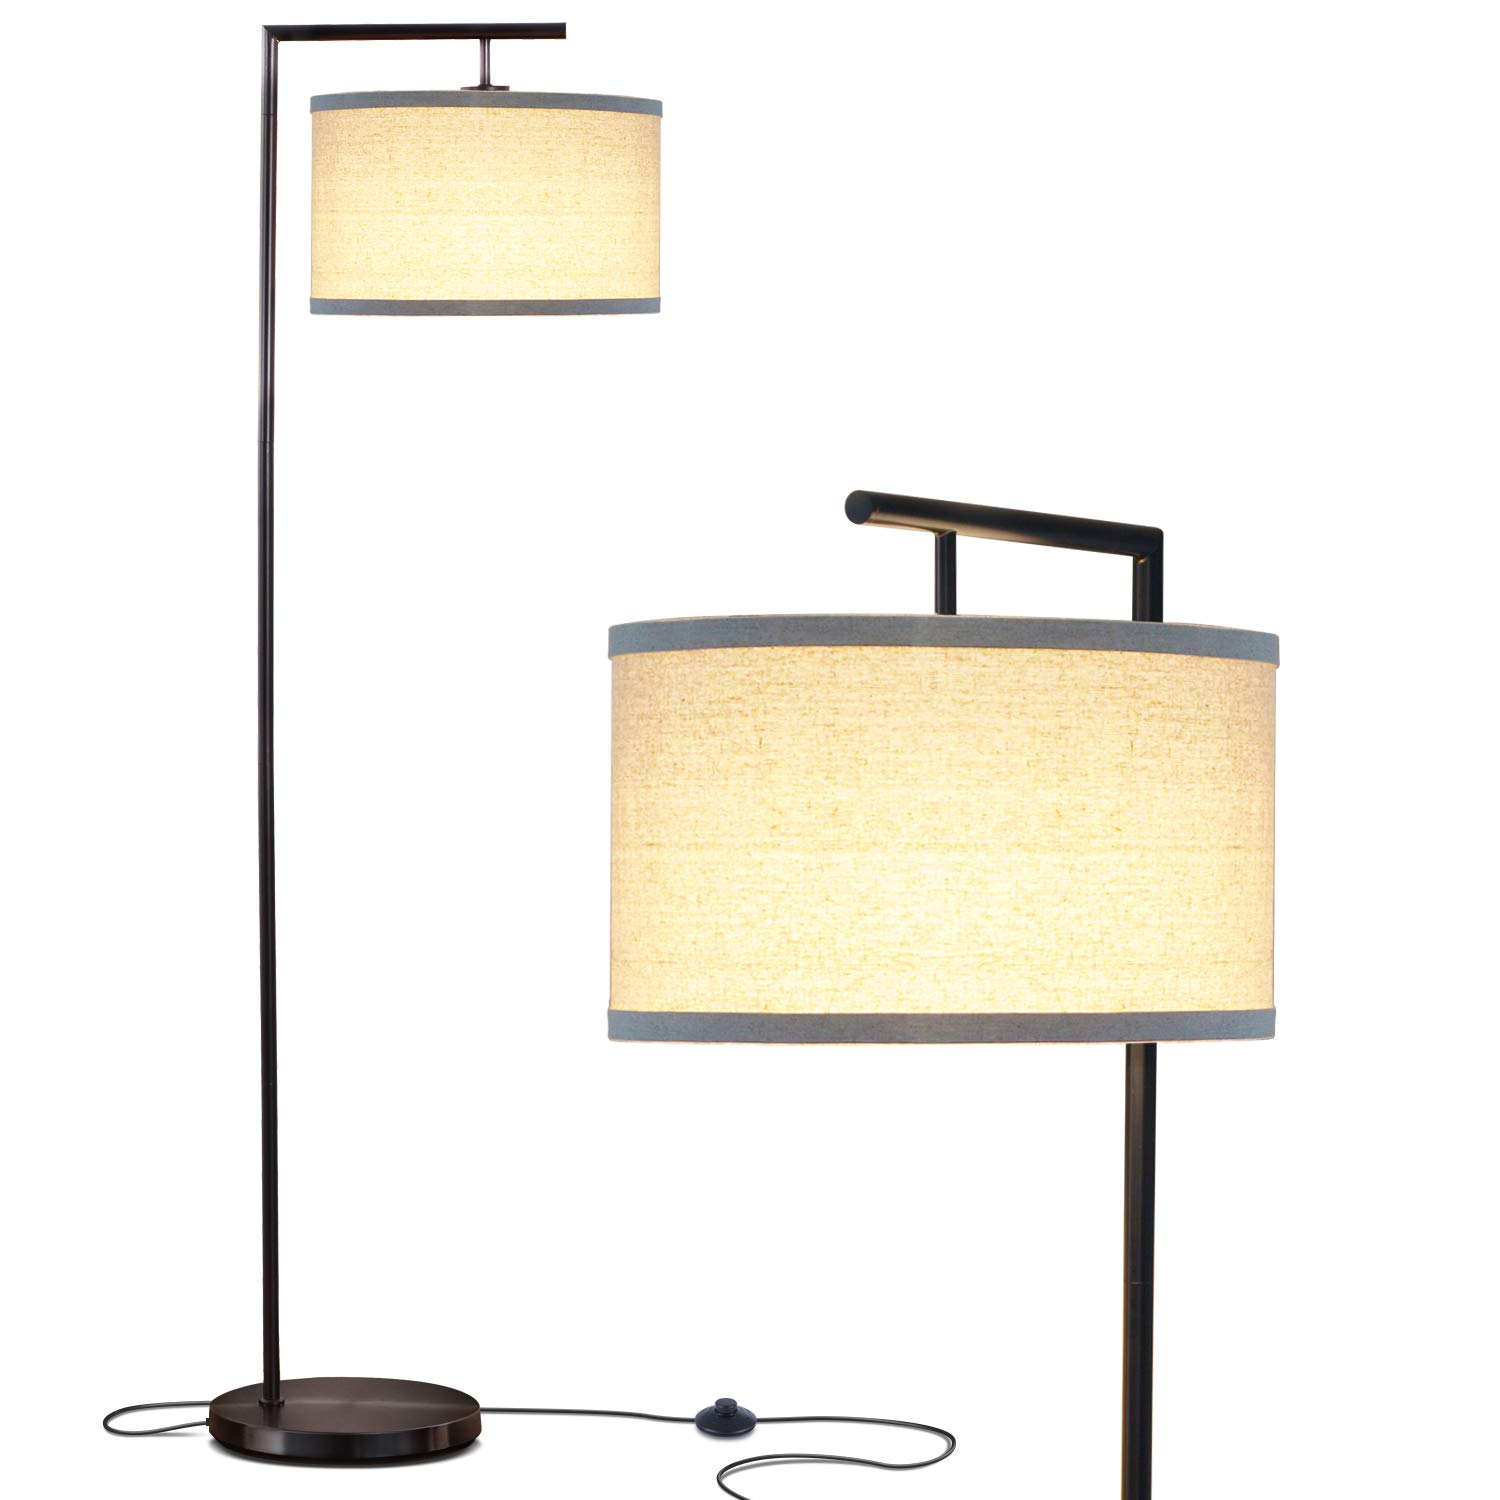 Brightech Montage Modern LED Floor Lamp - Living Room Light - Standing Pole with Hanging Drum Shade - Tall Downlight for Bedrooms, Family Rooms, Offices – Black